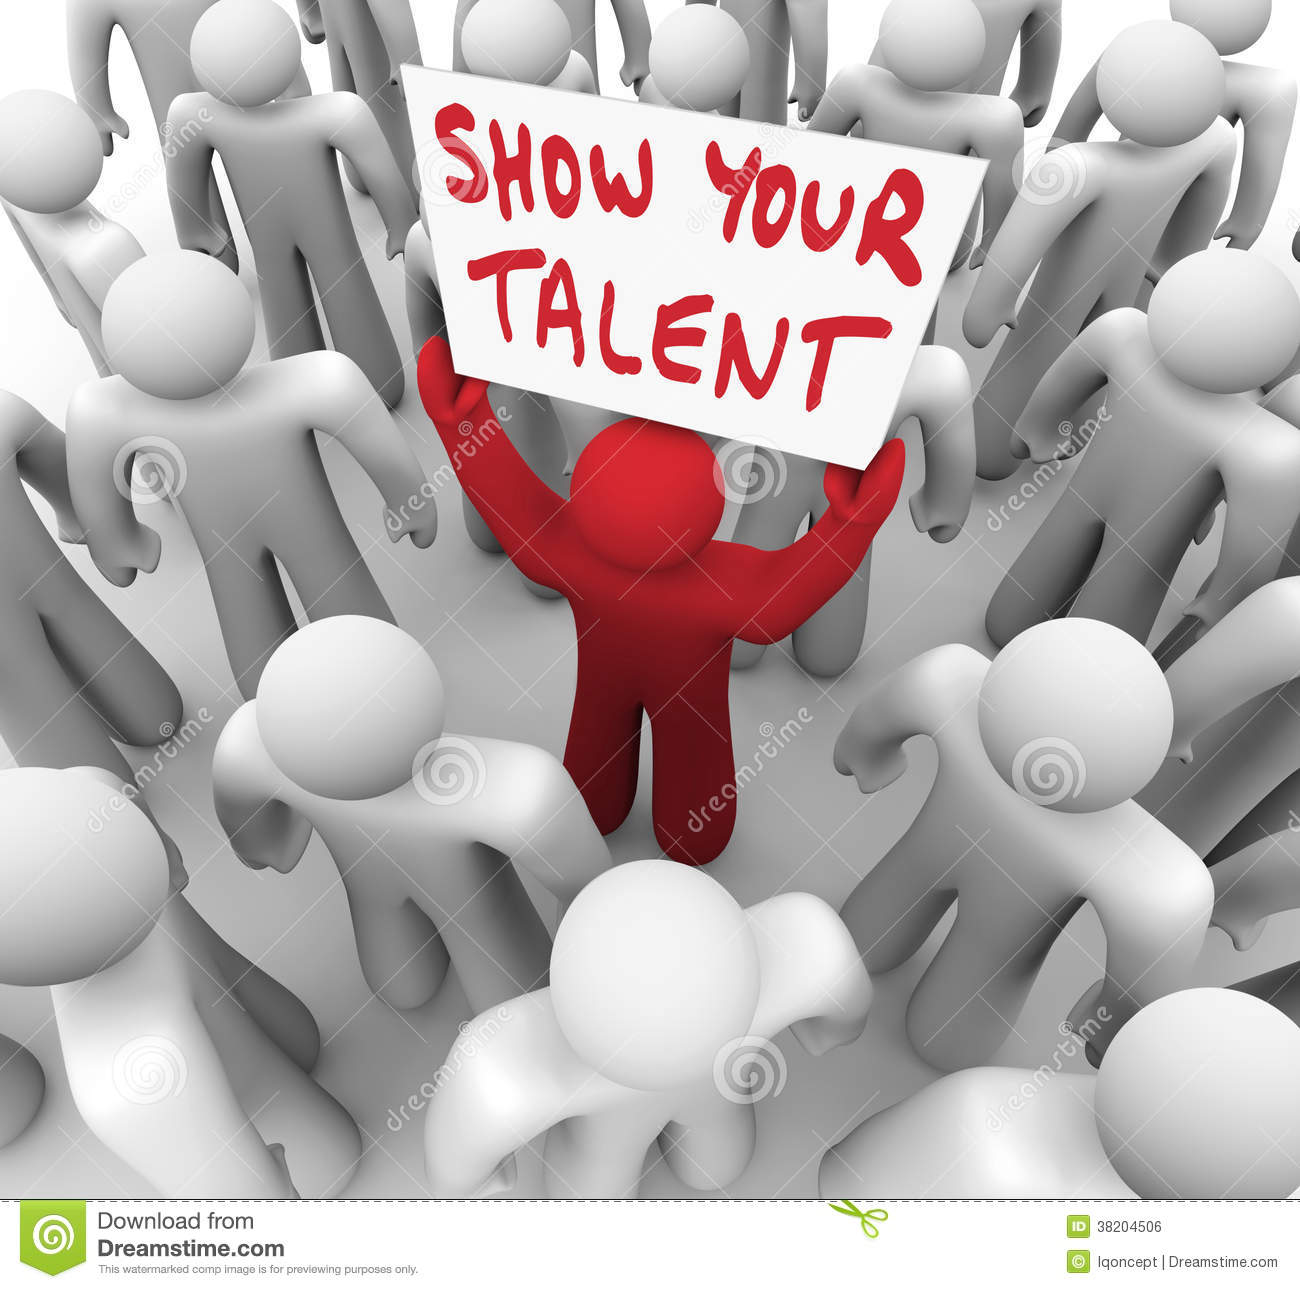 show your talent person holding sign display skills abilities show your talent person holding sign display skills abilities